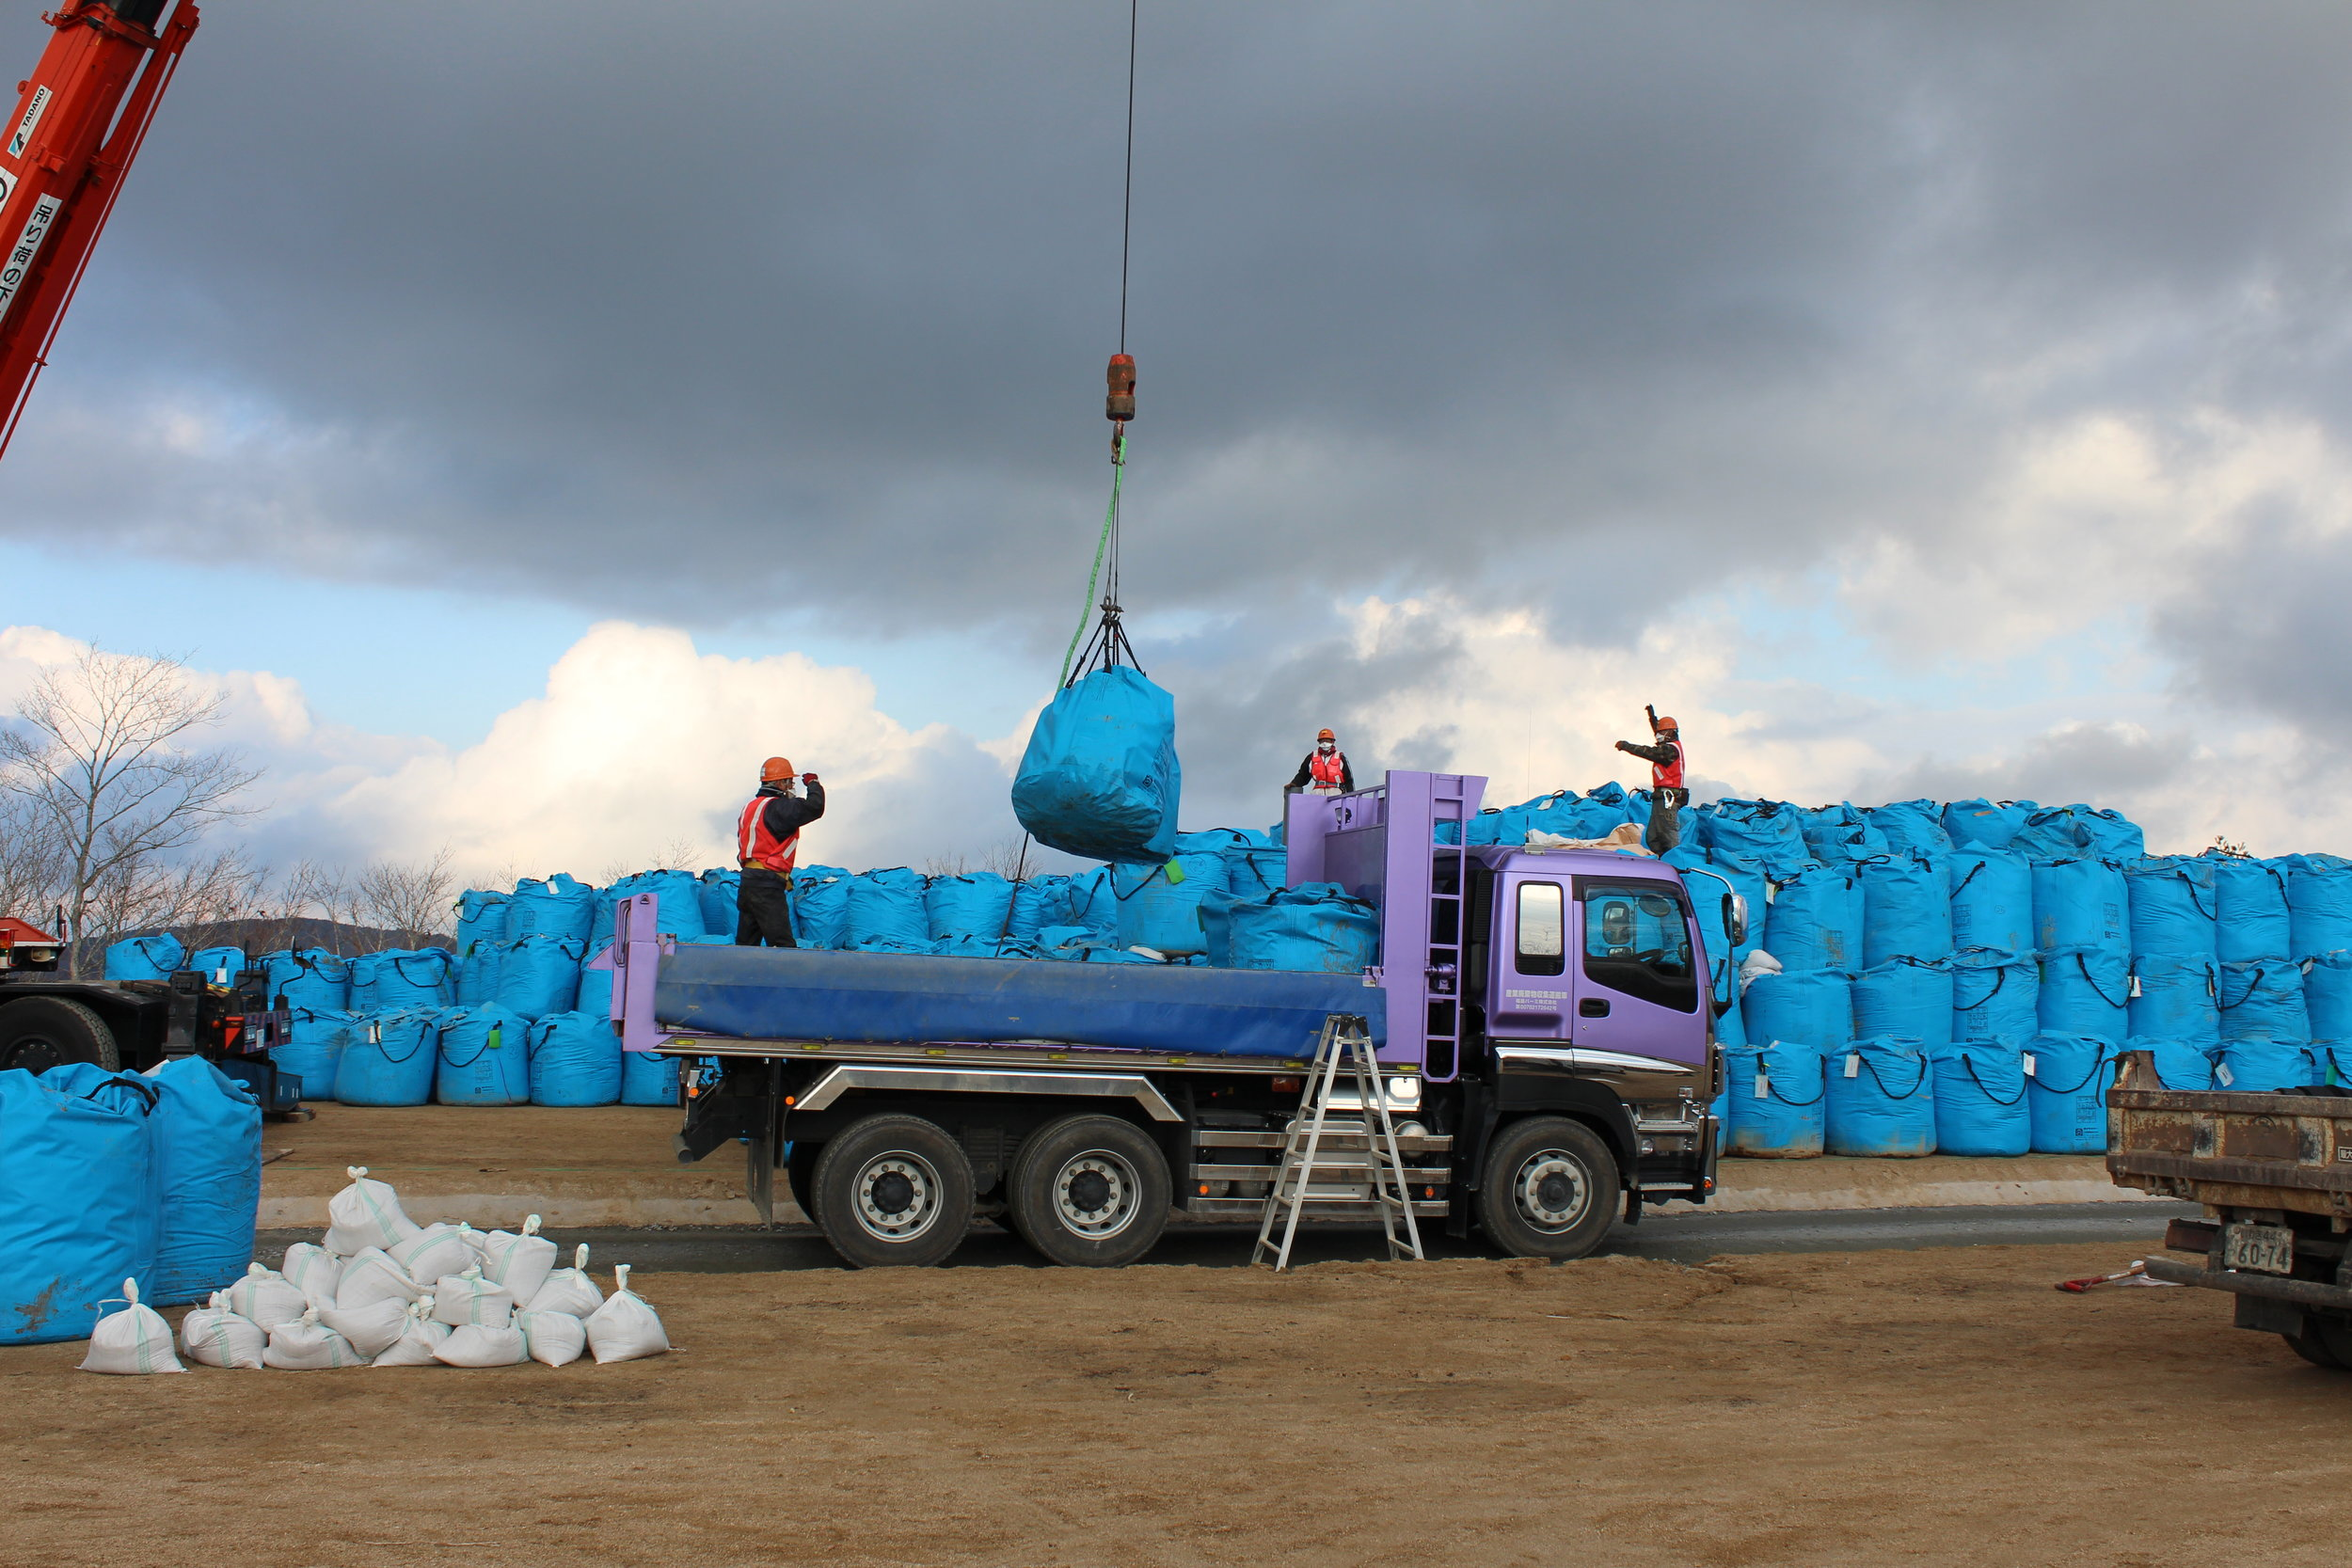 Bags of radioative waste awaiting some final, safe resting place.8.JPG